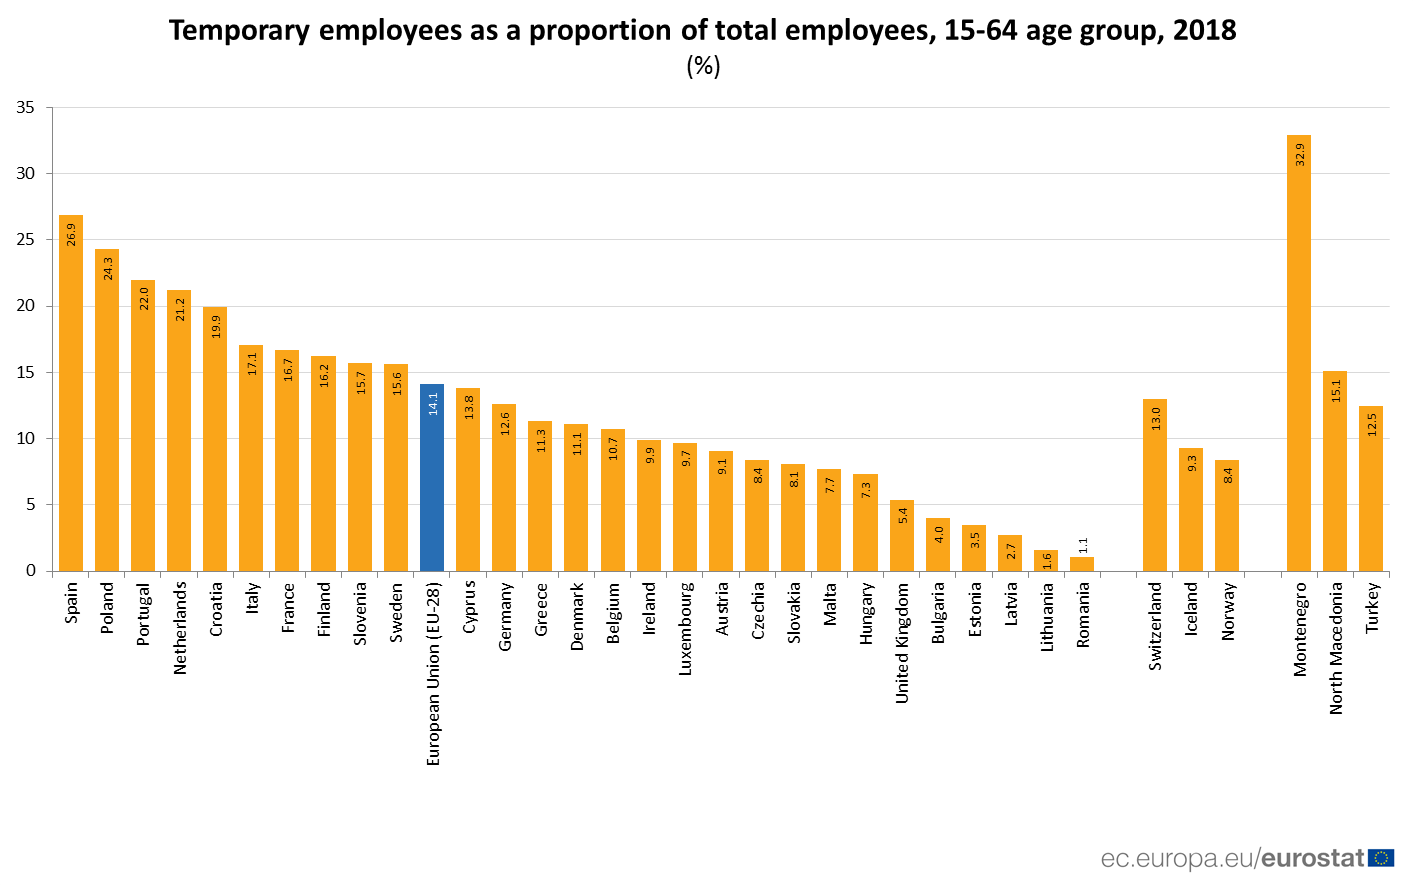 Bar chart showing temporary employees as a share of total employees aged 15-64, 2018